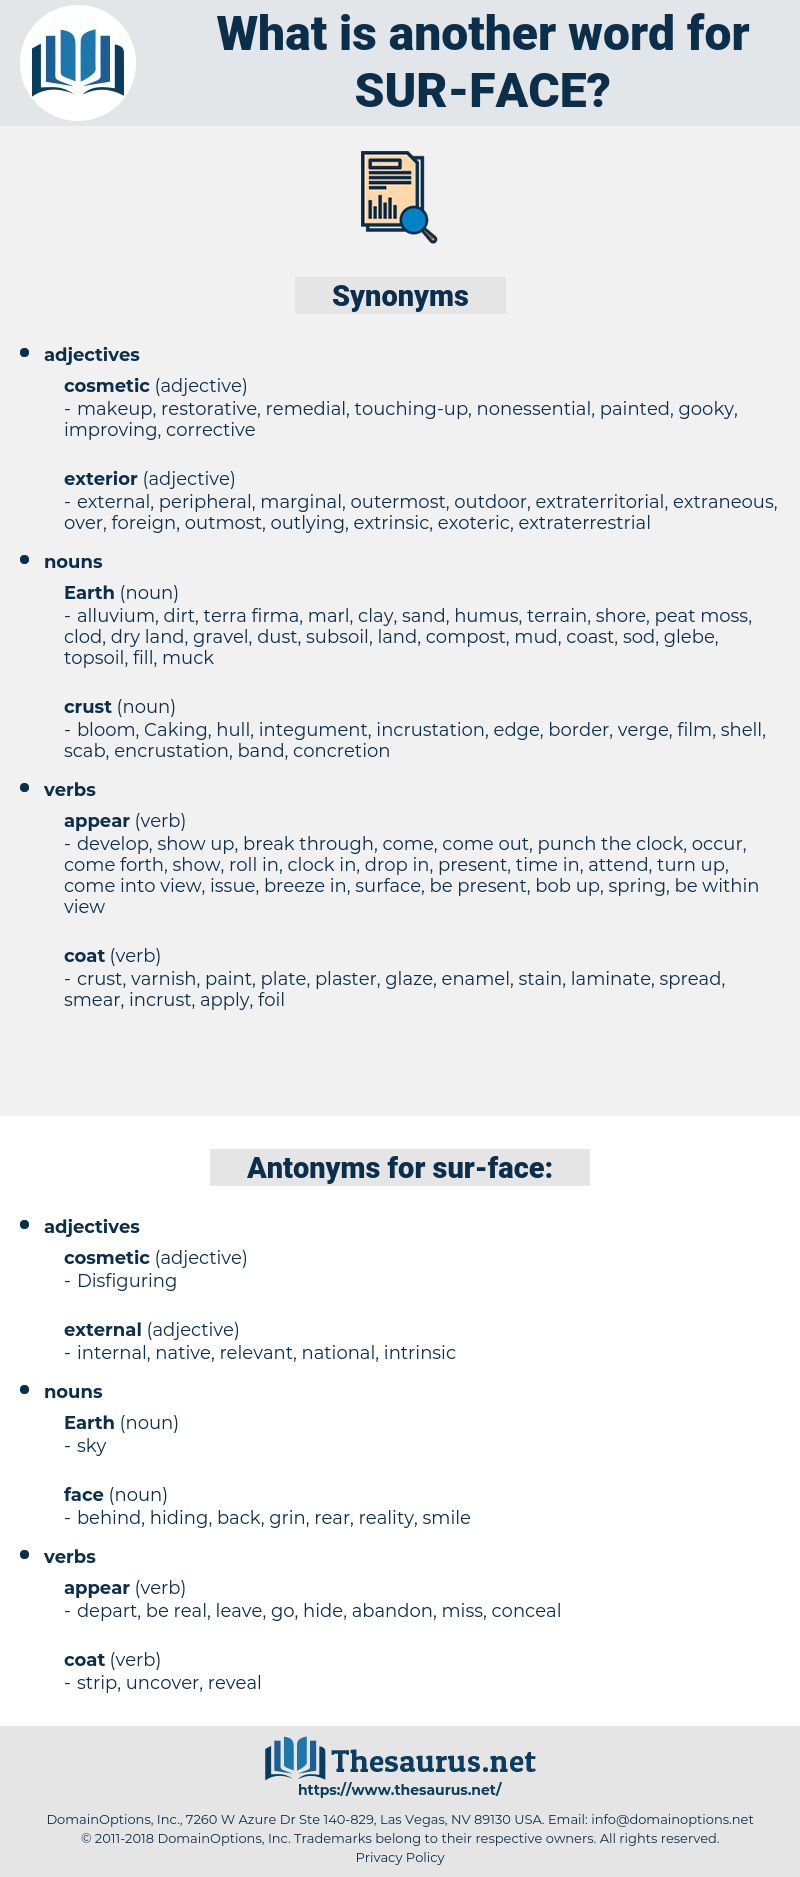 sur-face, synonym sur-face, another word for sur-face, words like sur-face, thesaurus sur-face